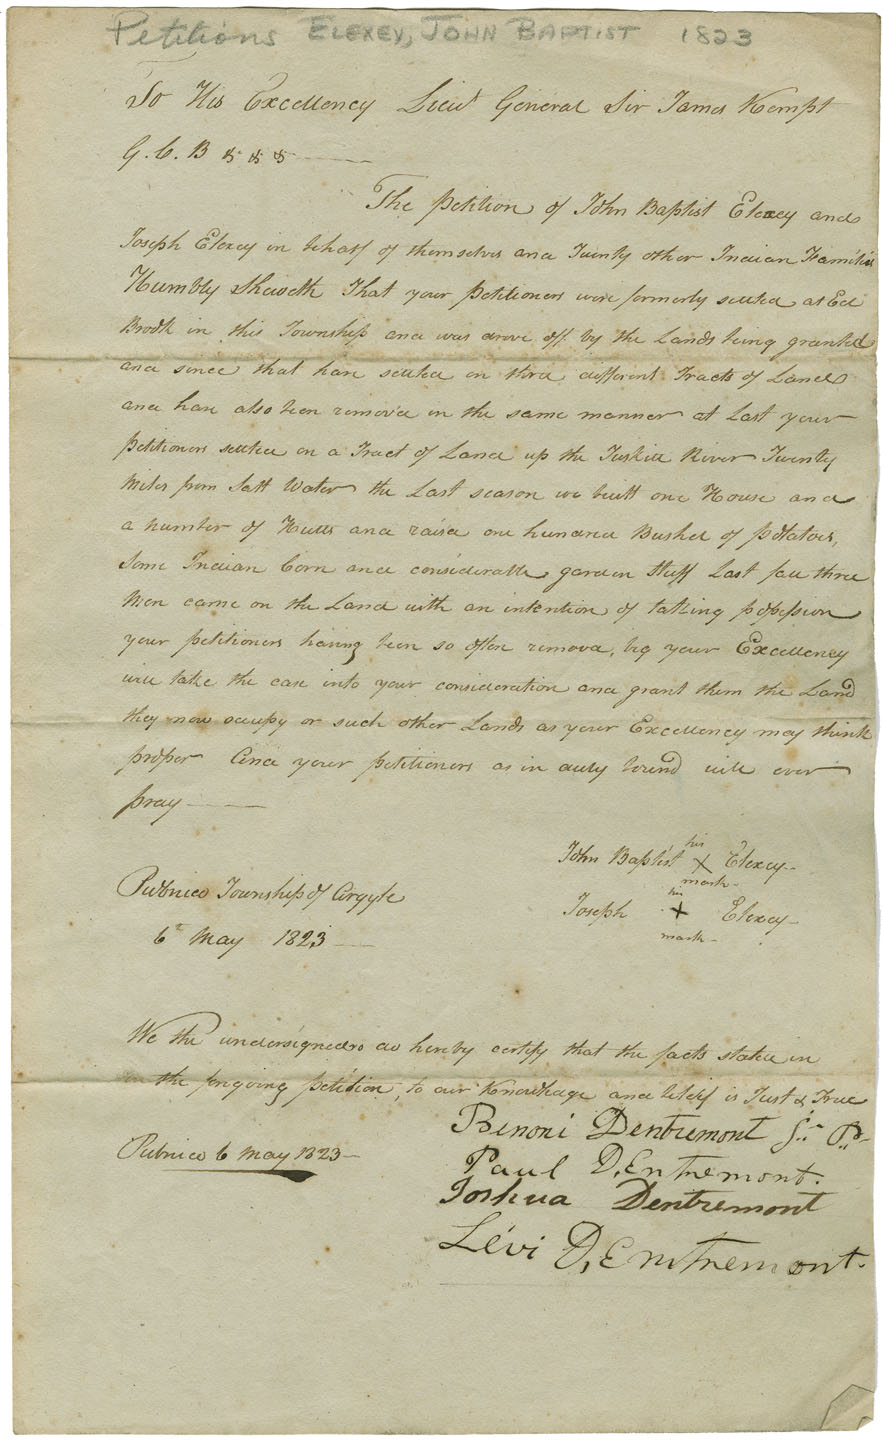 Petition by John Elexey and other Mi'kmaq on behalf of themselves and twenty other Mi'kmaq families, asking a grant of land on which they have settled at Pubnico, twennty miles back from salt water. They have built a house, several huts and raised a hundred bushels of potatoes, Indian corn and garden stuff.